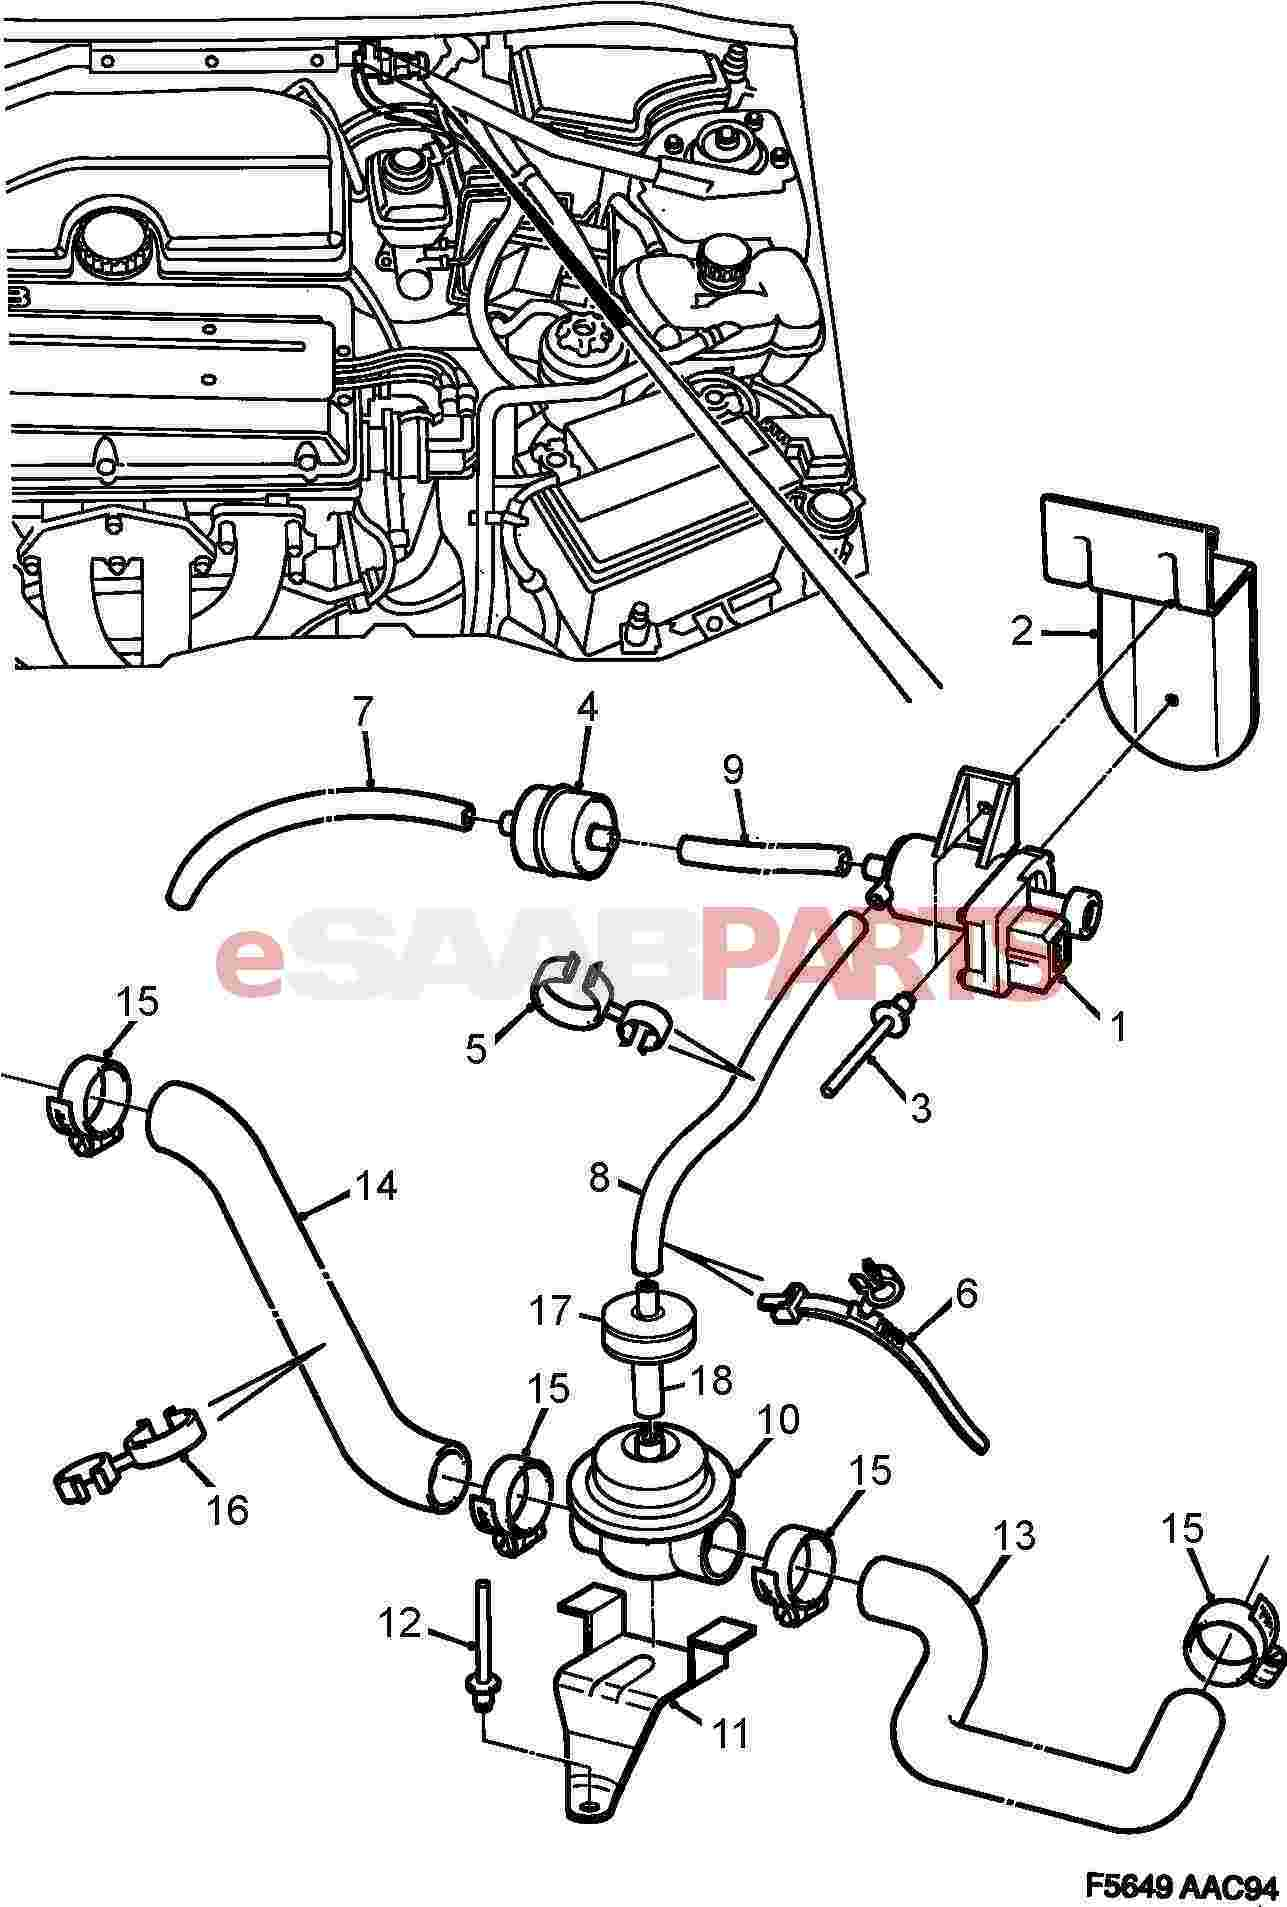 air cylinder flow control valve diagram